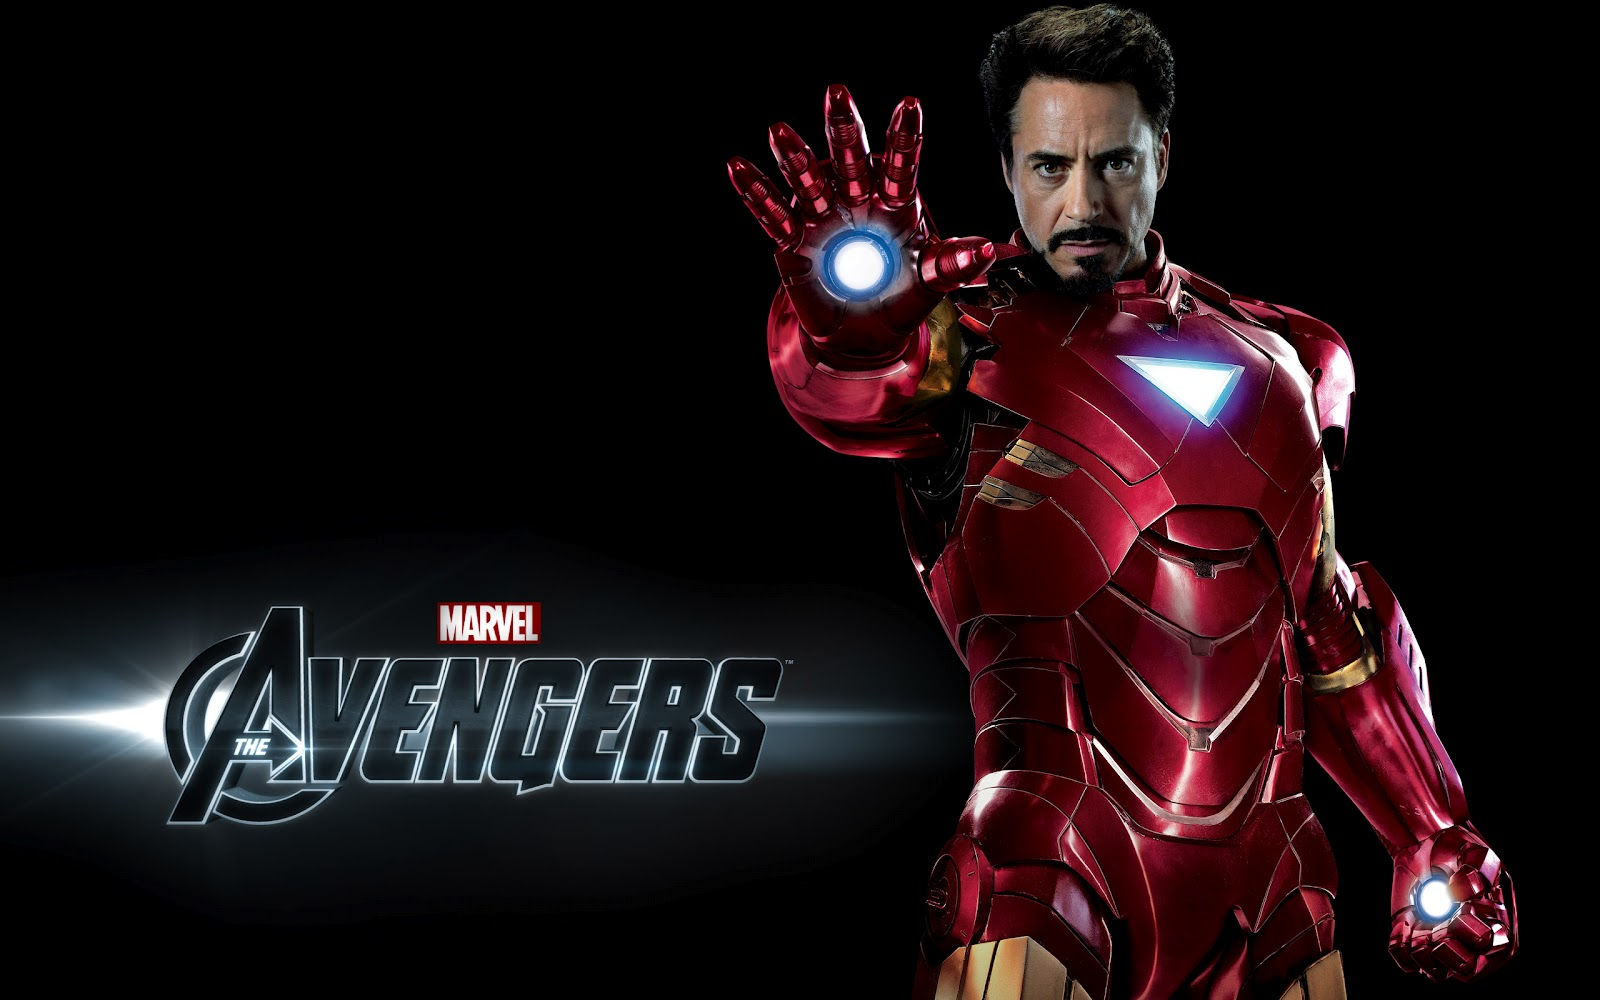 http://1.bp.blogspot.com/-2yWcSw1rT9o/UF35j7XLxJI/AAAAAAAAAXY/BQxiq95gMUM/s1600/iron_man_in_the_avengers-wide.jpg